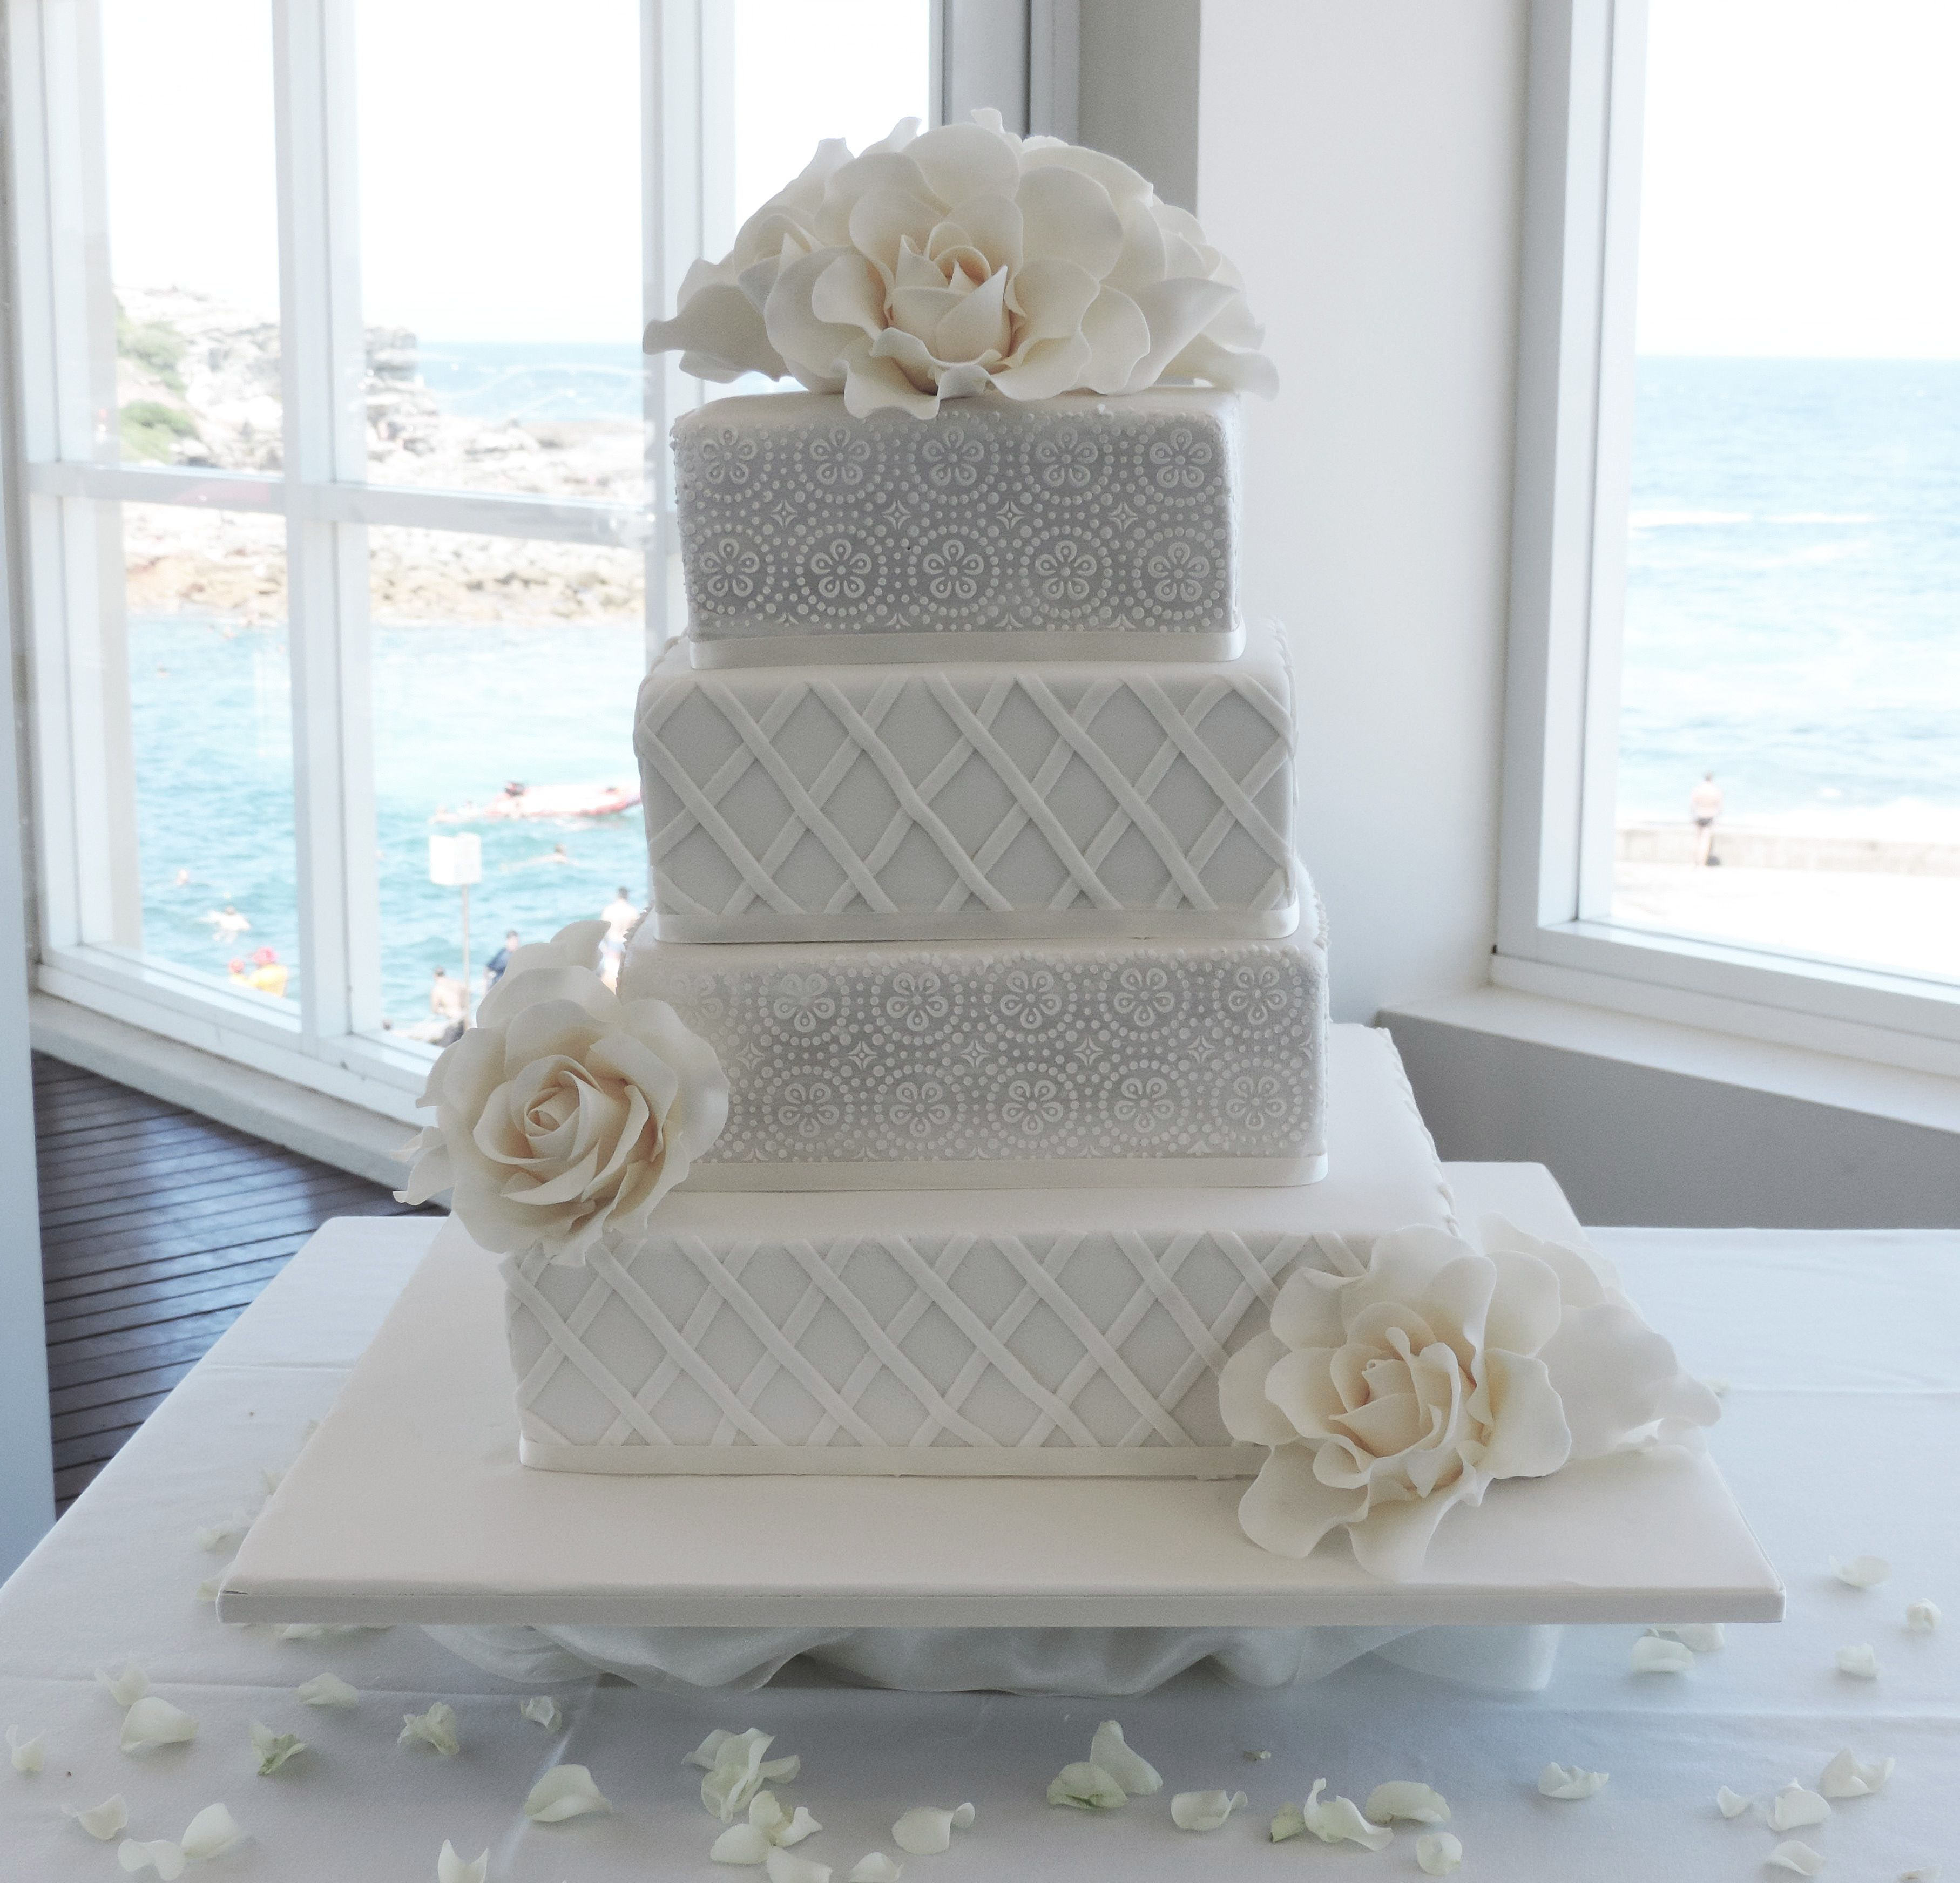 50 Amazing Wedding Cake Ideas for Your Special Day! - Deer